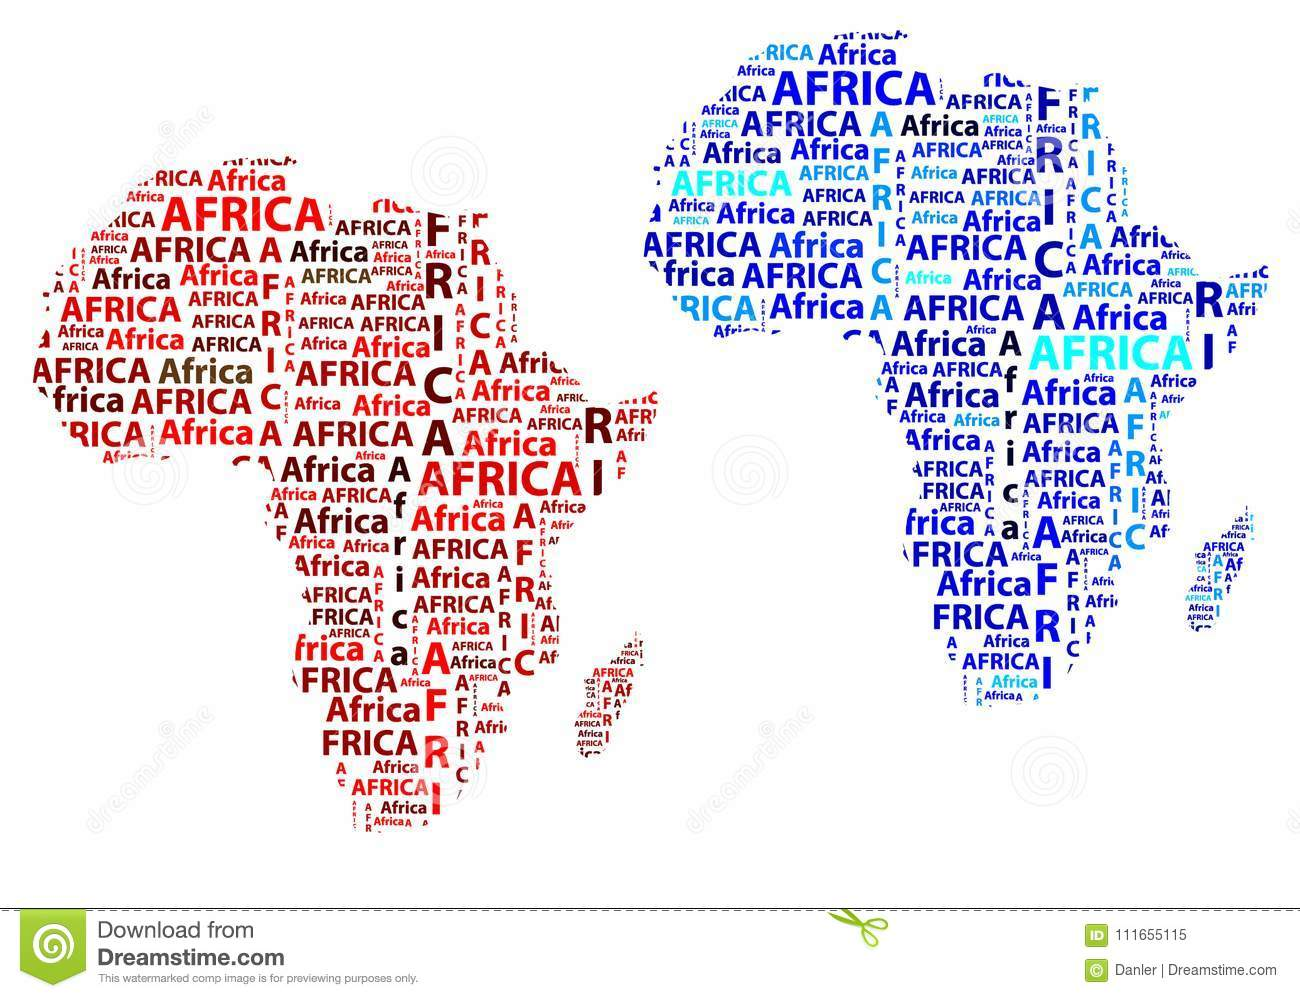 Map Of Continent Africa - Vector Illustration Stock Vector ... Map Of Afri on map of ethiopia, map of benin, map of goa, map of martin luther, map of ghana, map of span, map of art, map of adobe, map of amer, map of asia, map of last, map of afr, map of amst, map of univ, map of soc, map of fren, map of history, map of nigeria, map of europe, map of namibia,